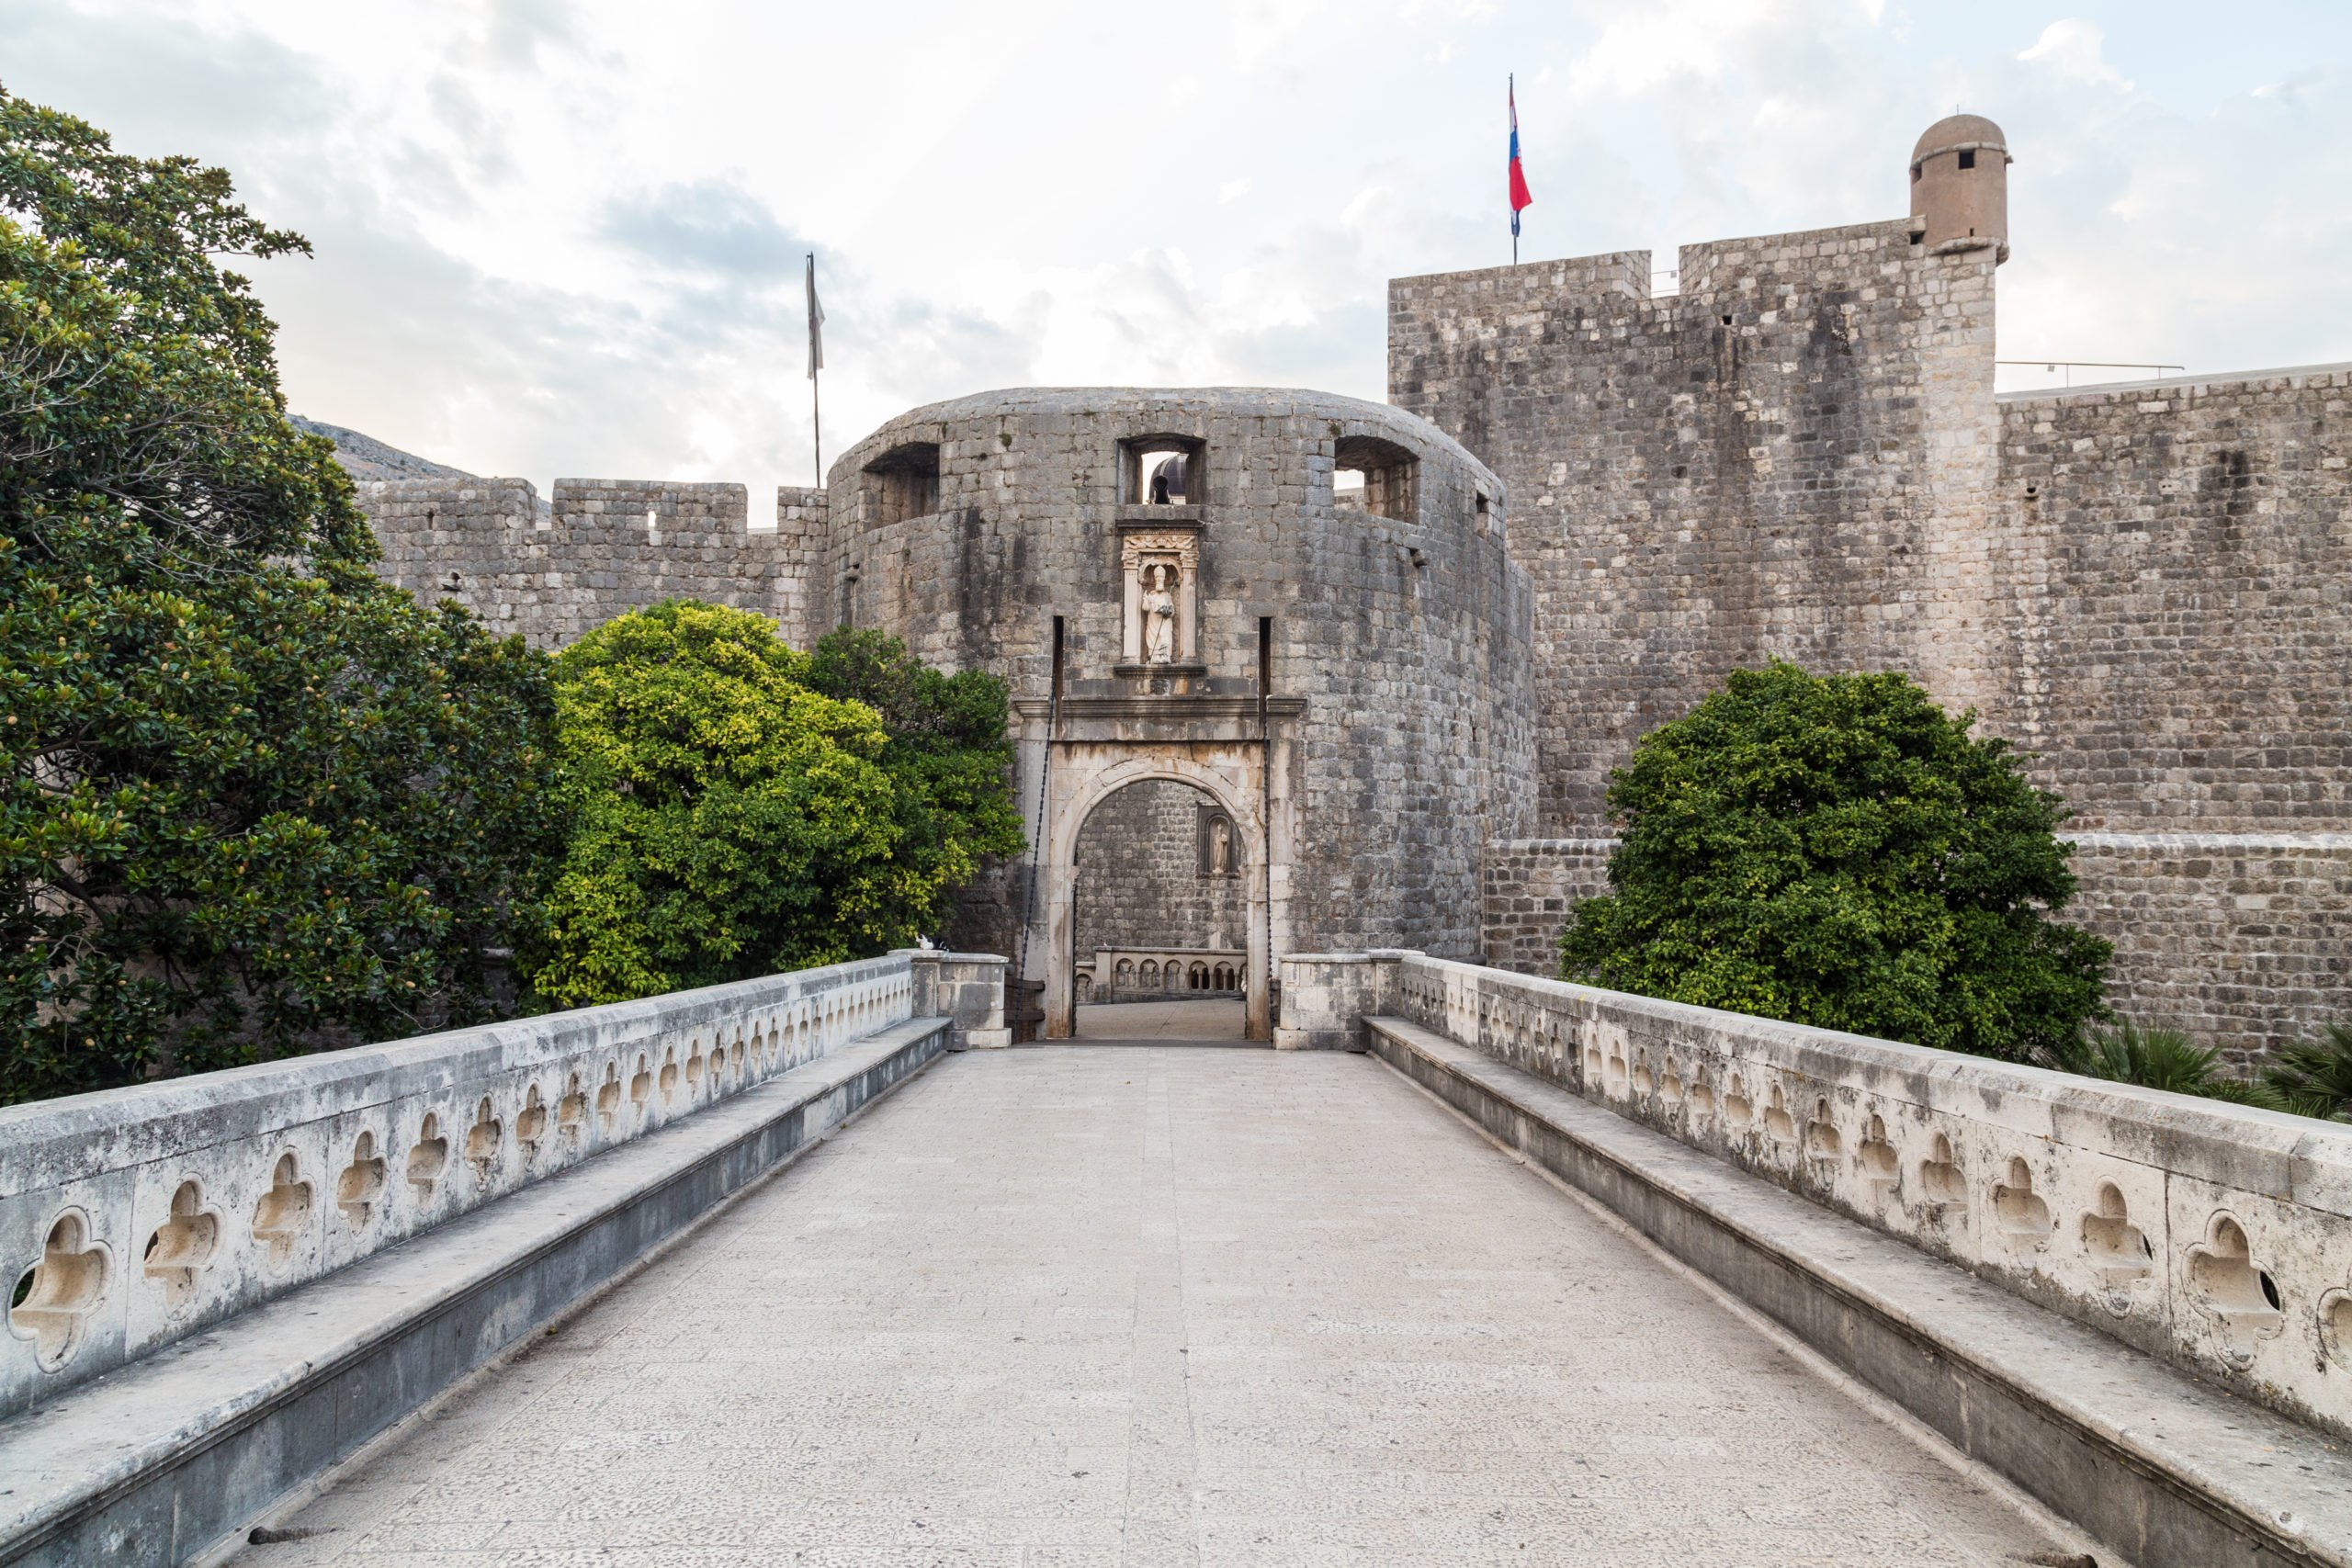 Walk Through The Pile Gate, The Film Location Of The Famous Walk Of Shame Of Queen Cersei On The Game Of Thrones And Dubrovnik Shore Tour